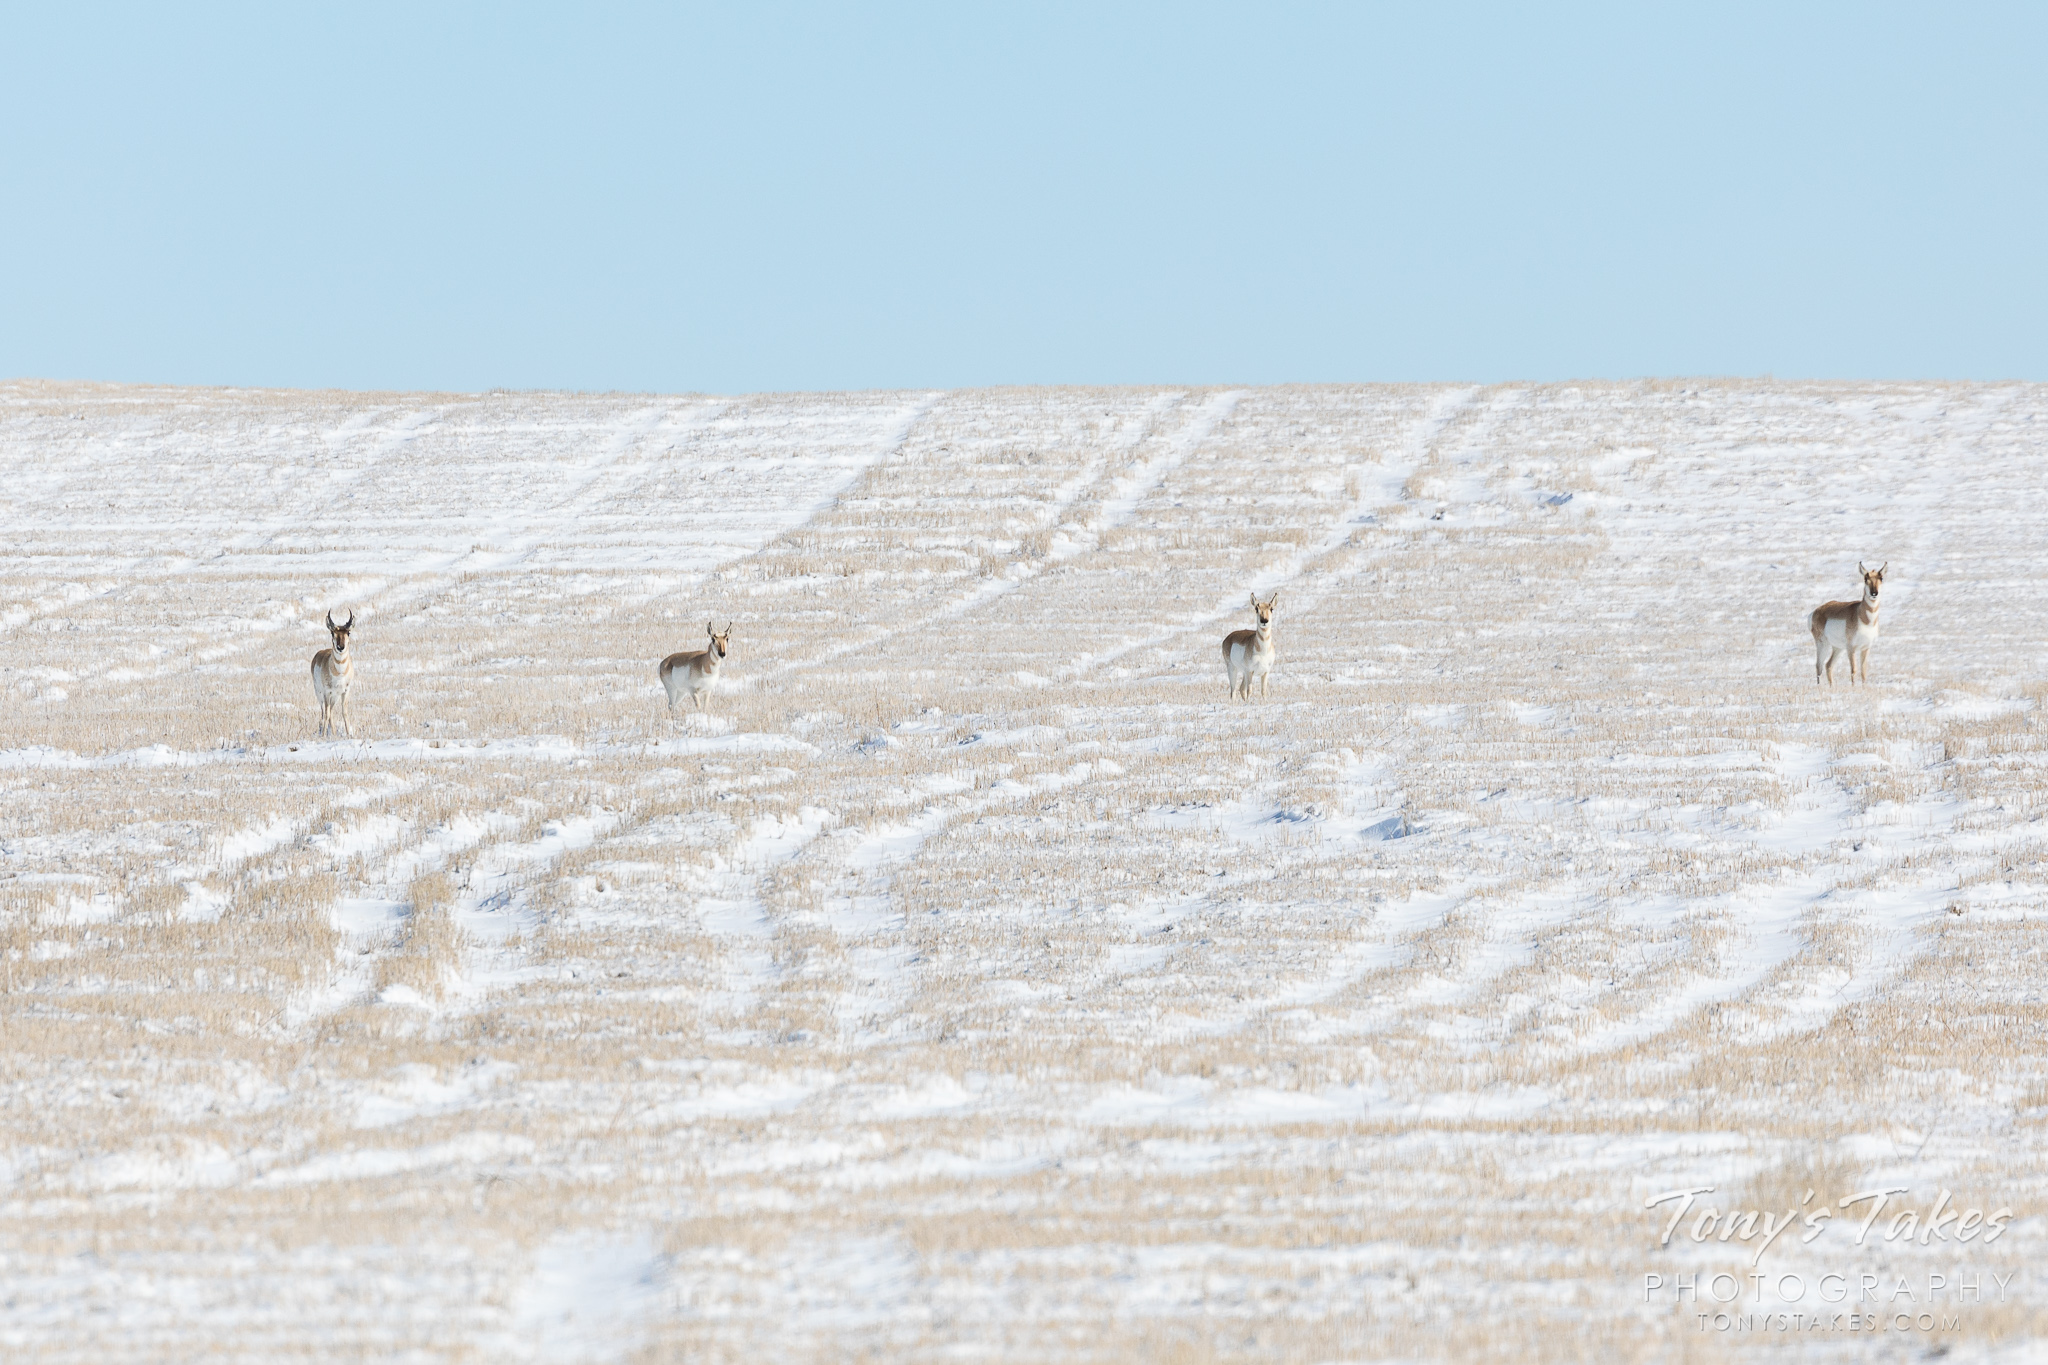 Pronghorn paying attention on the snow-covered plains